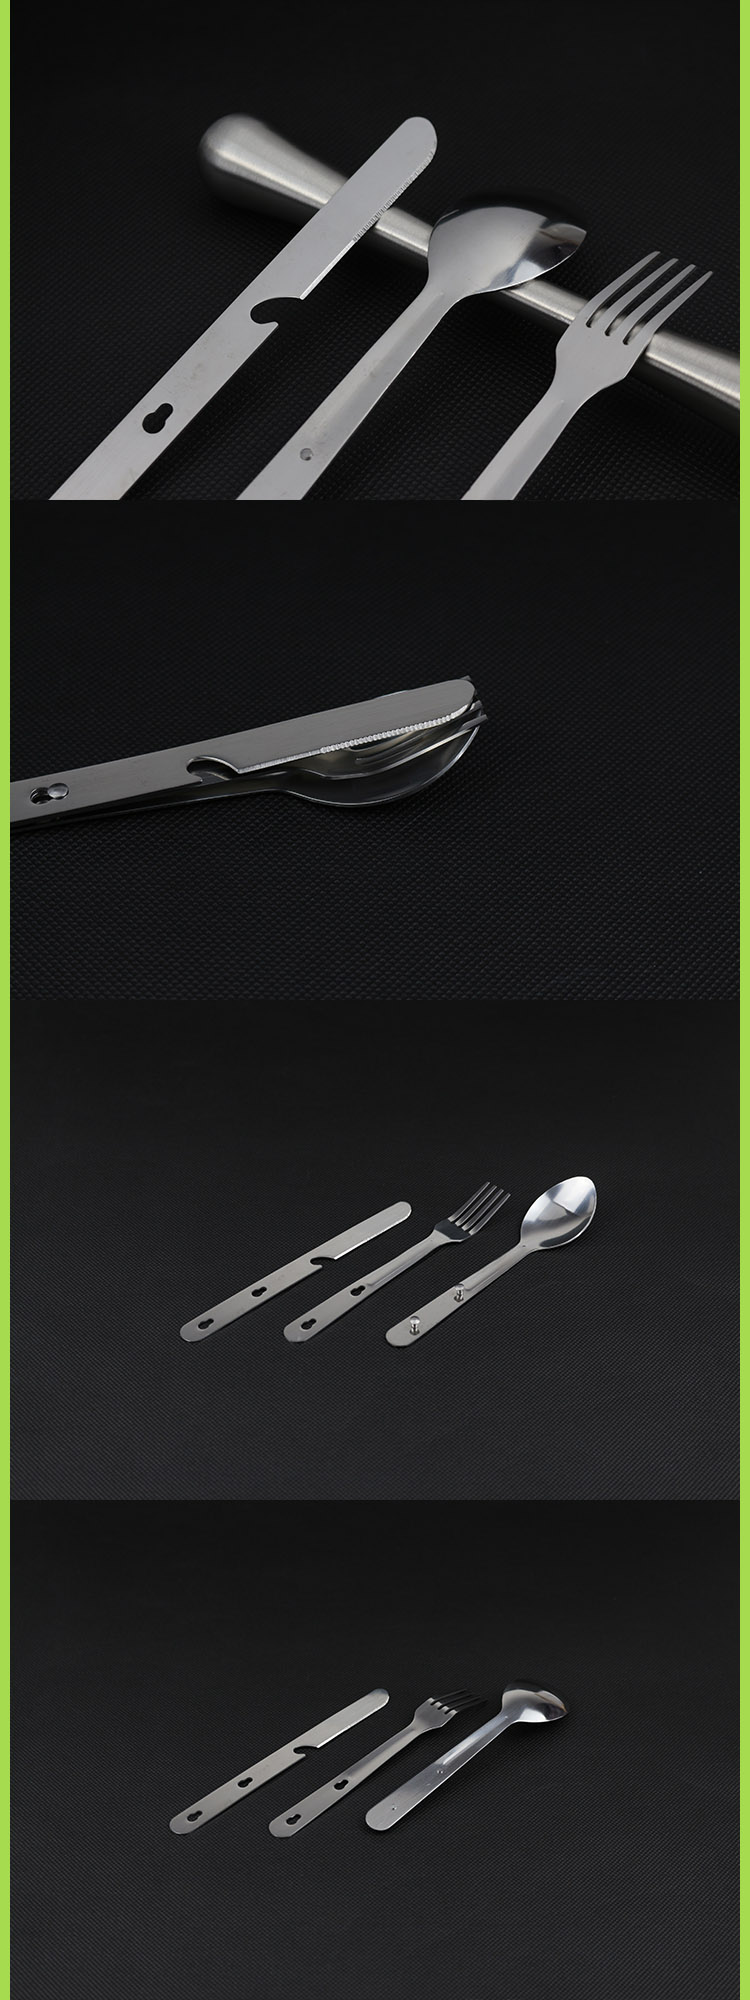 Stainless Steel Travel Portable Camping Cutlery Fork Knife Spoon Set